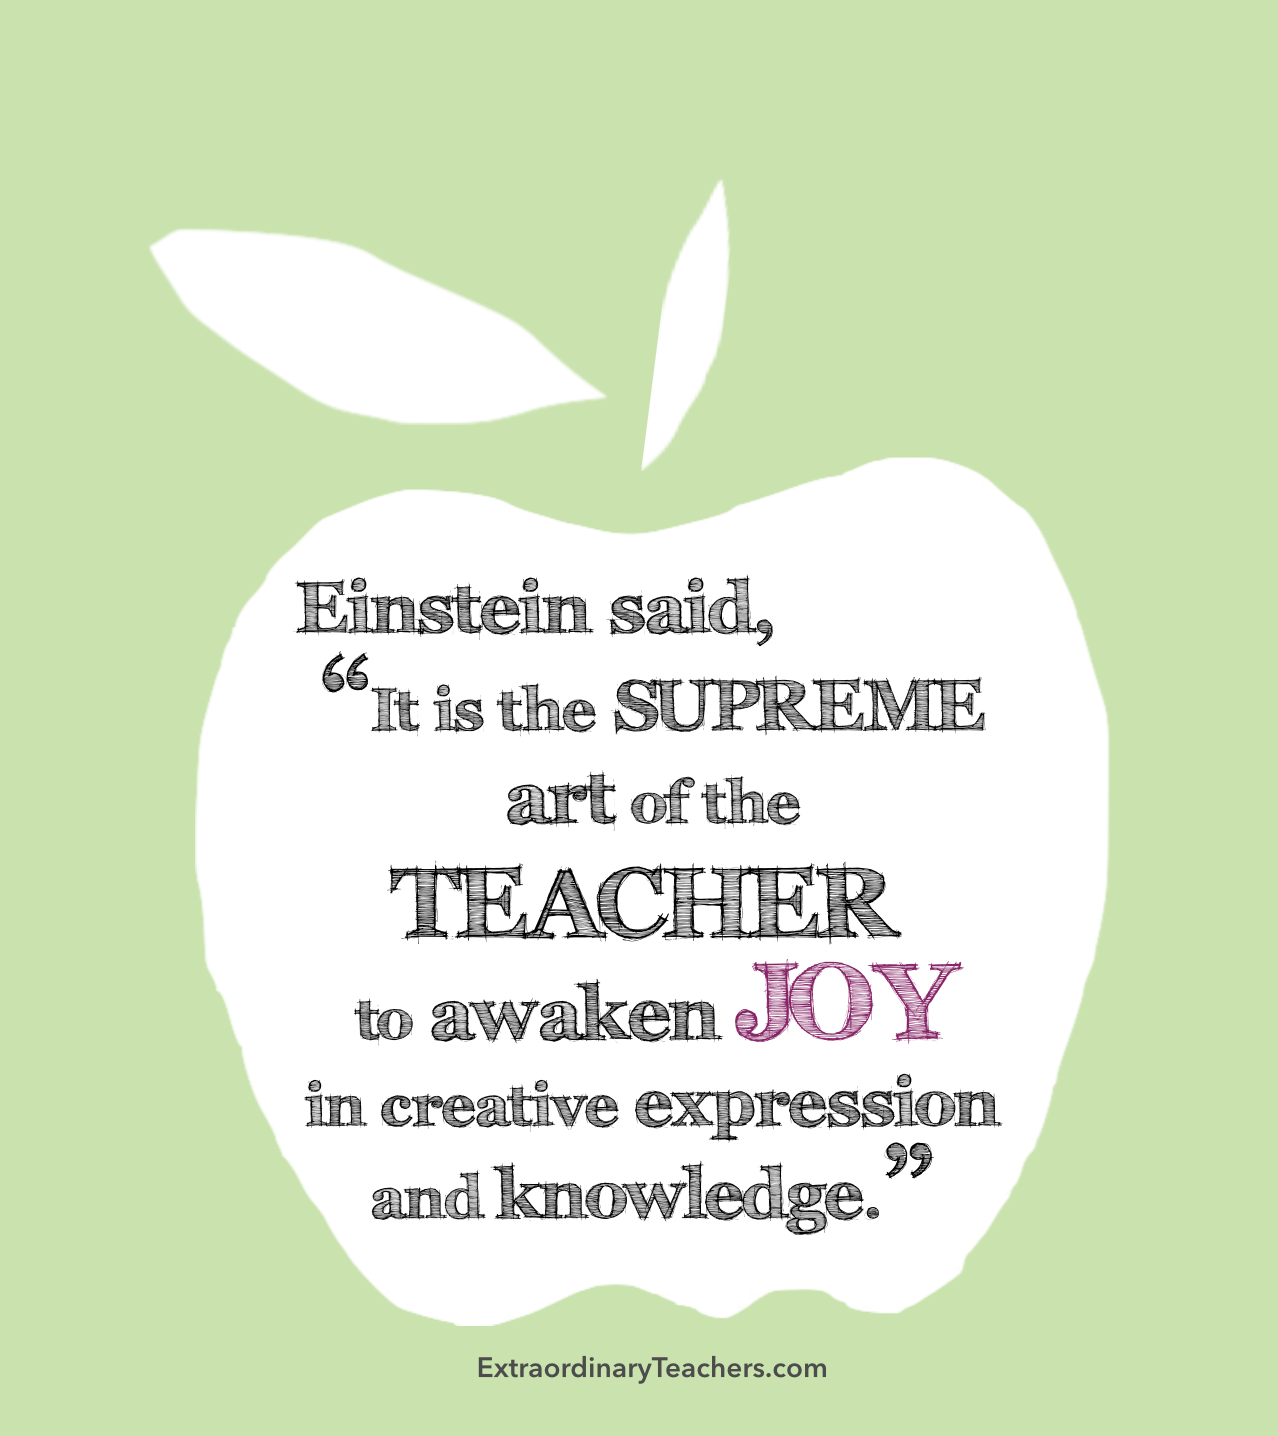 Inspiration Quotes For Teachers: Inspiring Teacher Quotes